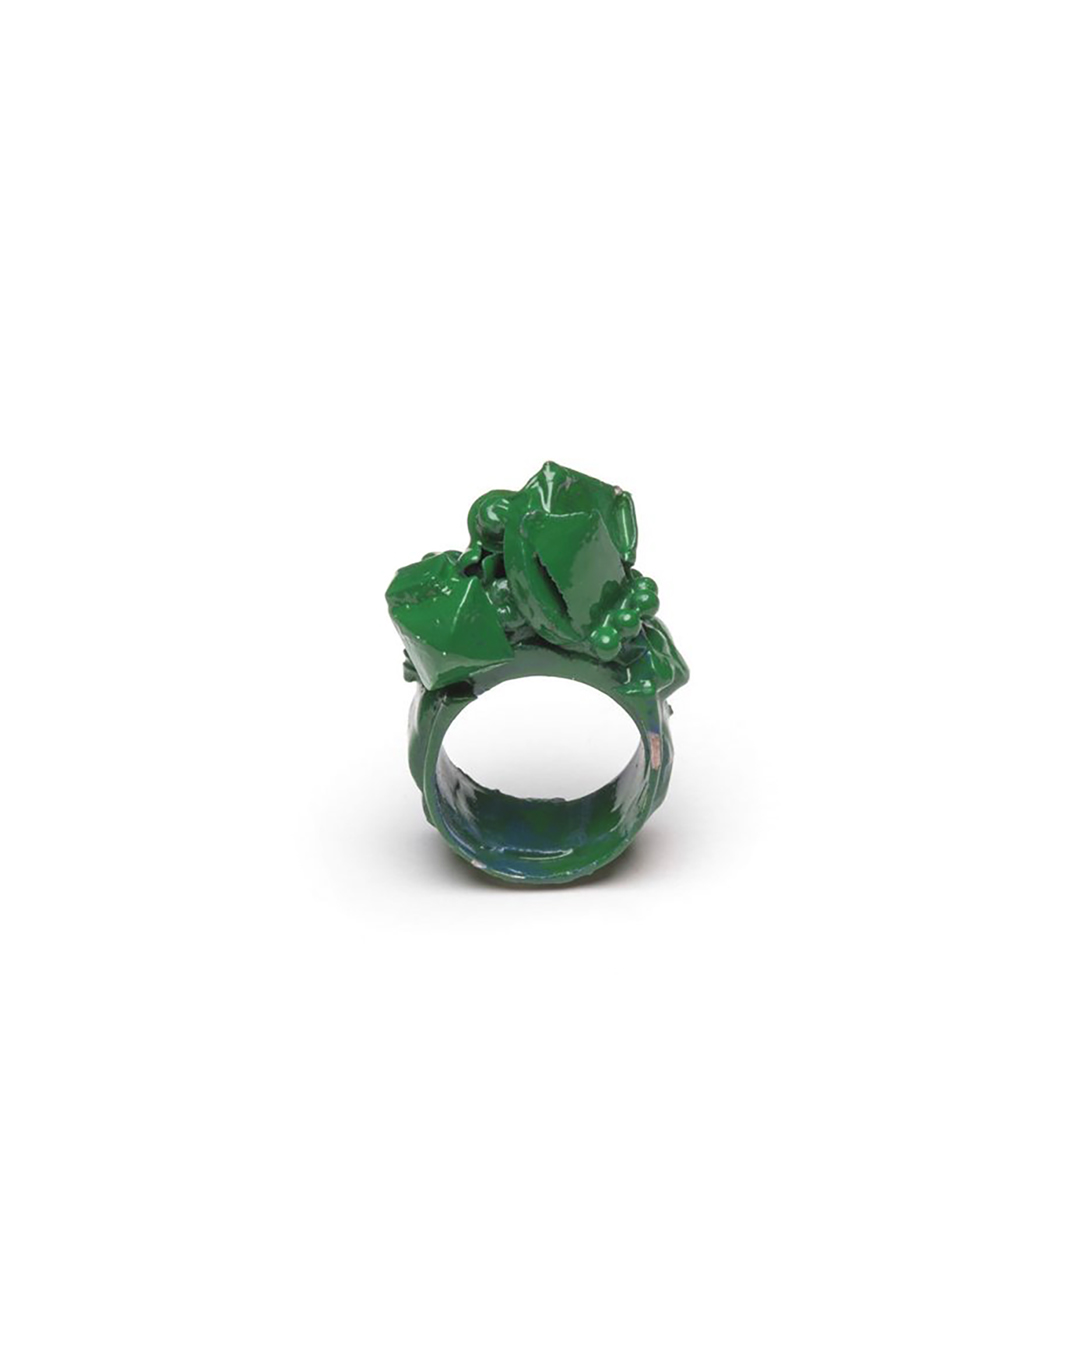 Doron Taubenfeld, untitled, 2009, ring; metal, paint, 35 x 20 x 14 mm, €350